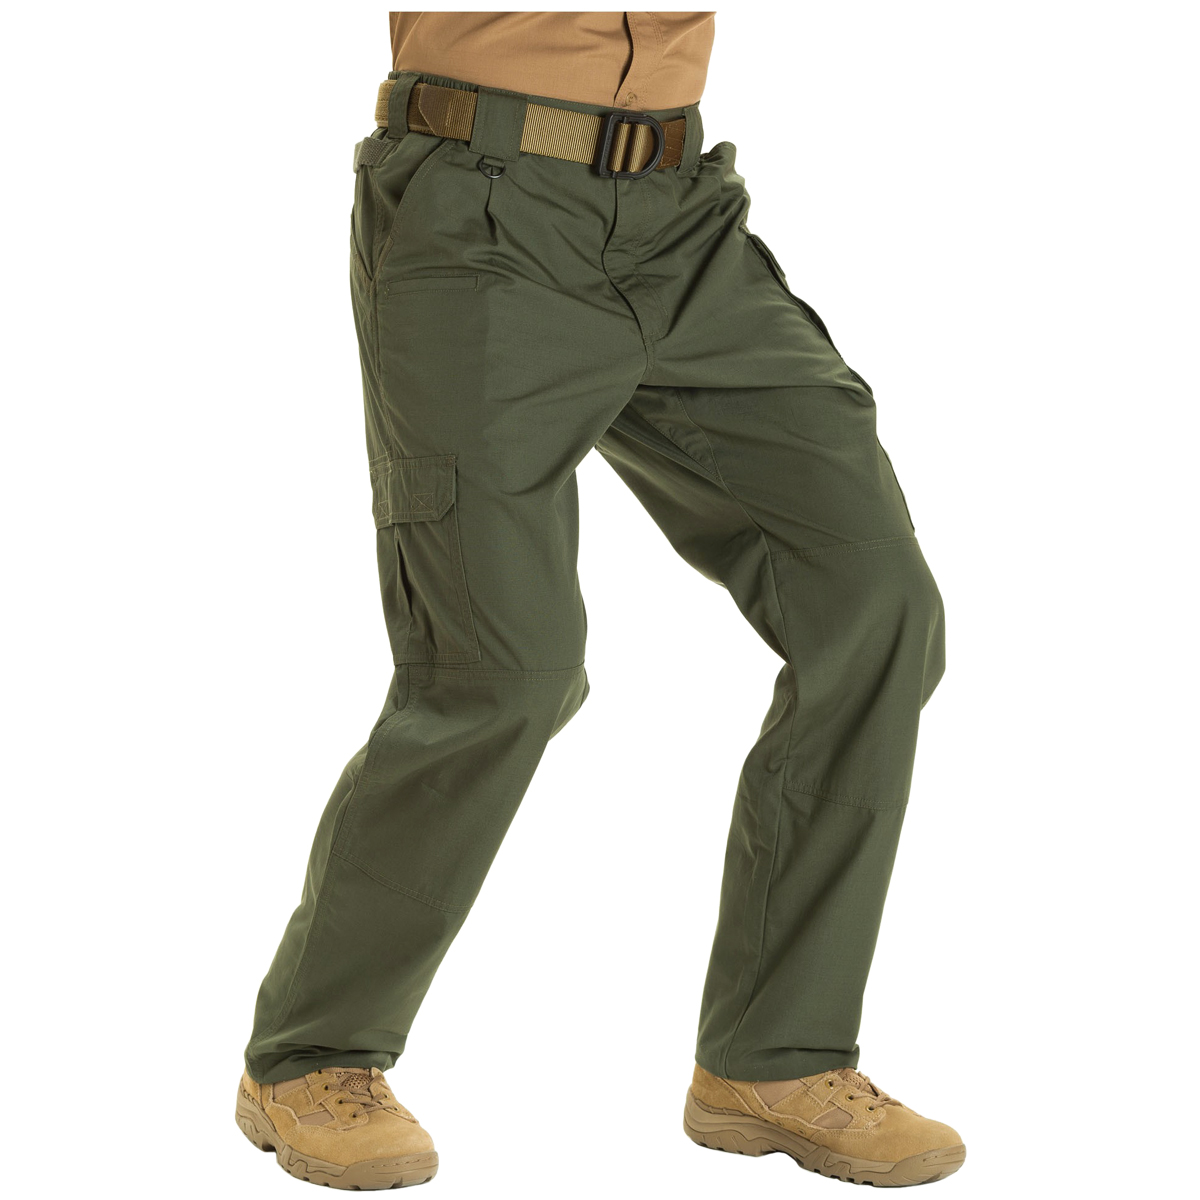 5.11 Taclite Pro Trousers Cargo Mens Pants Security Police Guard Olive Tdu Green